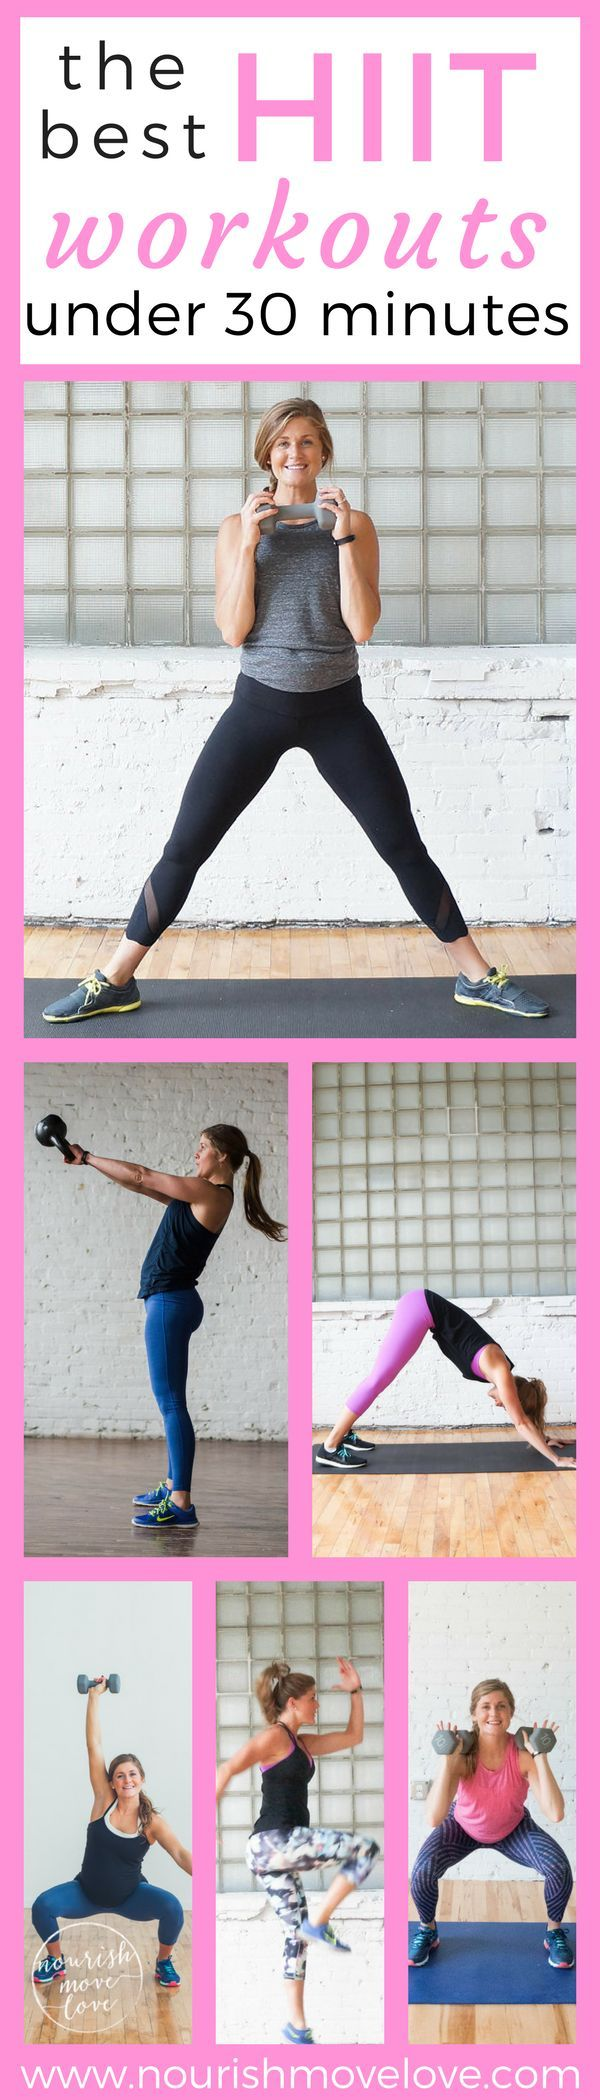 The Best HIIT Workouts Under 30 Minutes I hiit workouts I hiit workouts at home I  hiit I high intensity interval training I at home workouts II Nourish Move Love #hiit #workouts #fitness